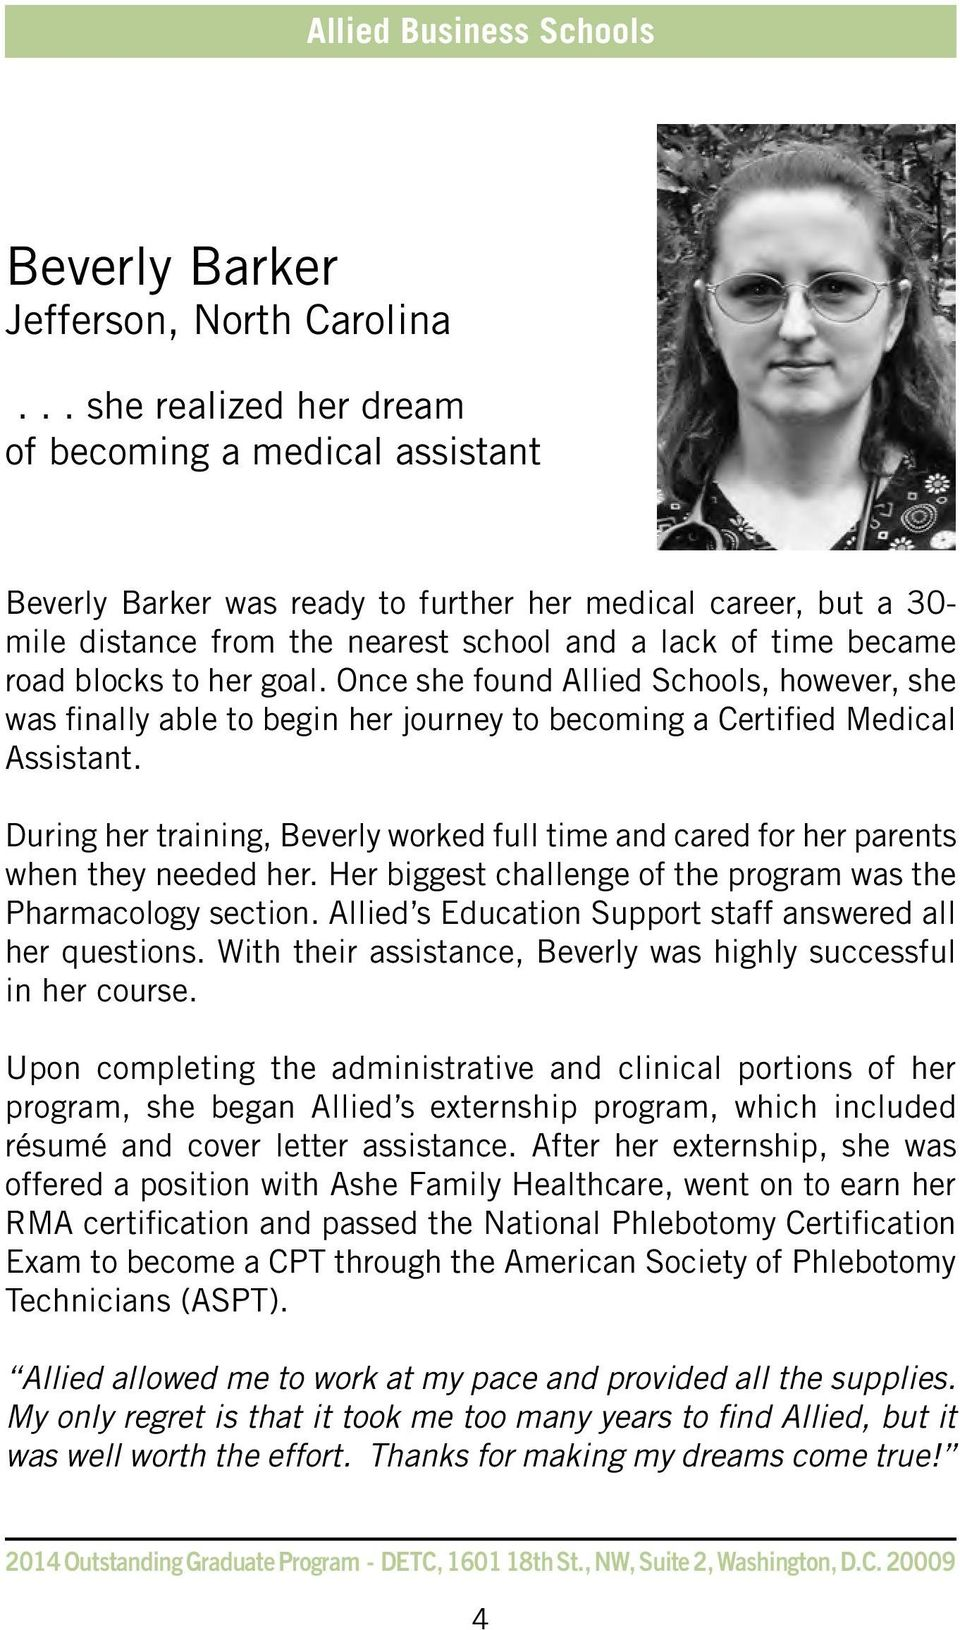 to her goal. Once she found Allied Schools, however, she was finally able to begin her journey to becoming a Certified Medical Assistant.